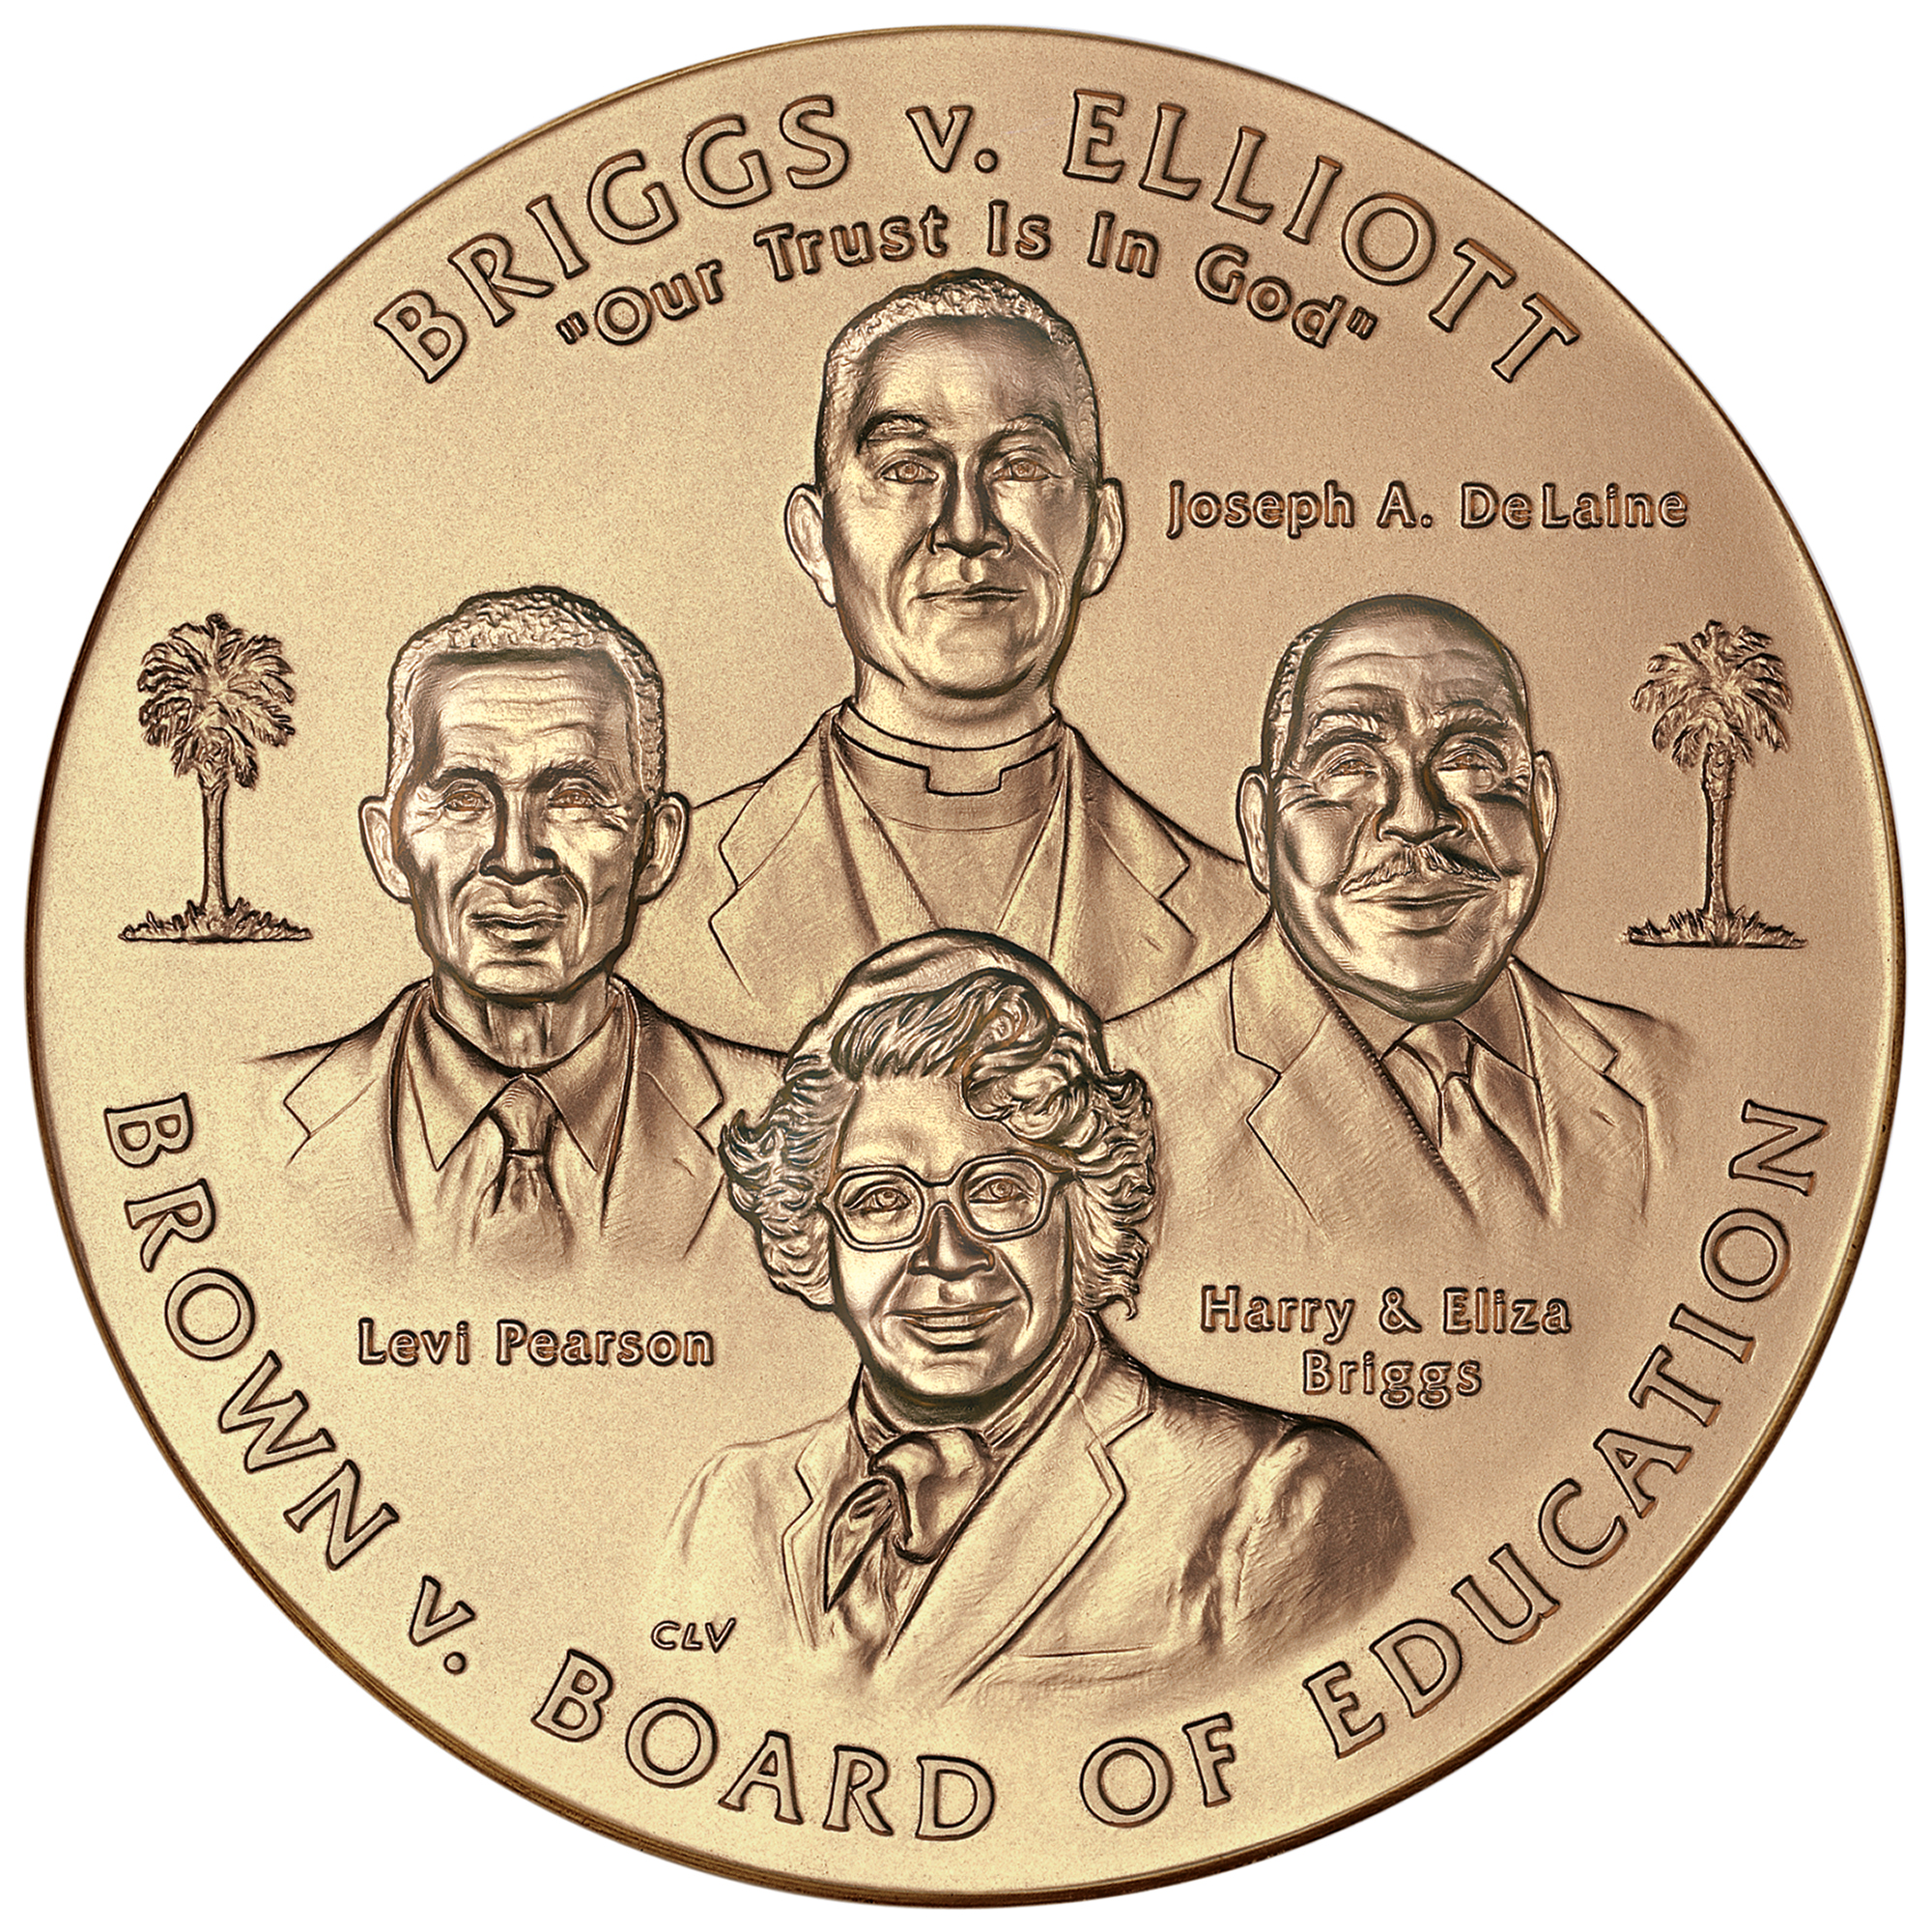 external image 2003_Brown_et_al._v._the_Board_of_Education_of_Topeka_et_al._Congressional_Gold_Medal_front.jpg